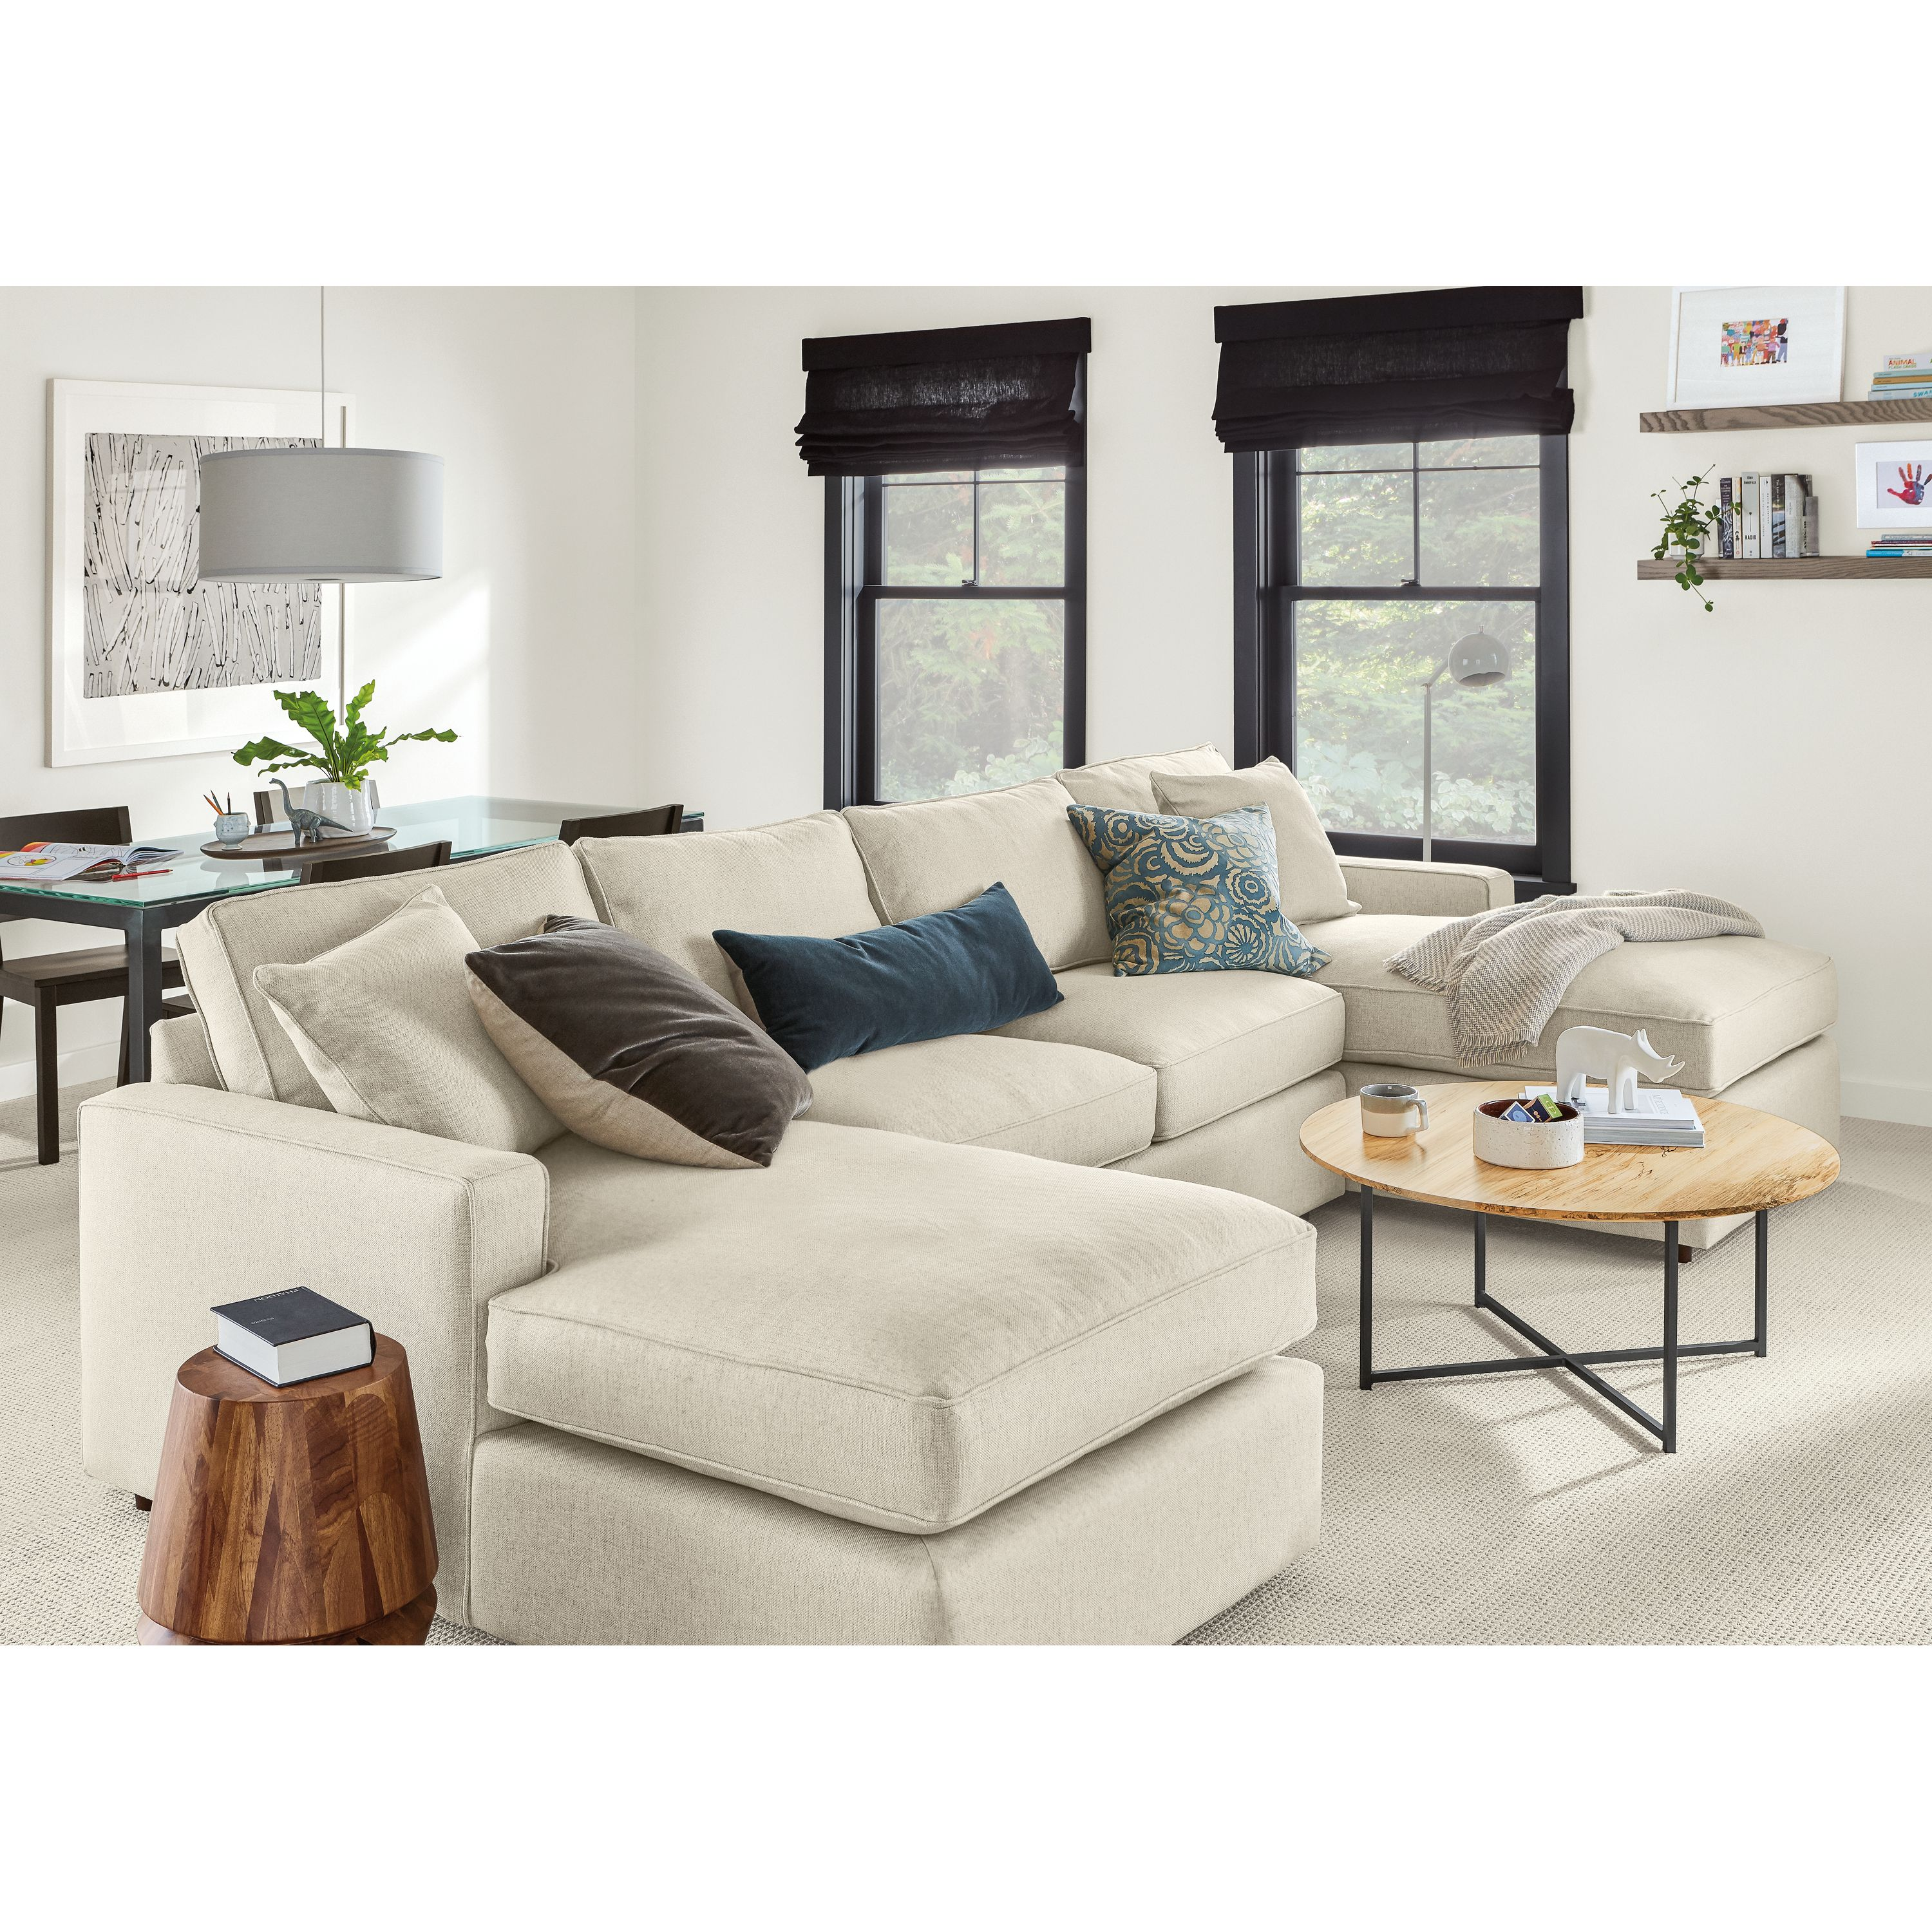 Room & Board  York Sectionals in 10  Modern furniture